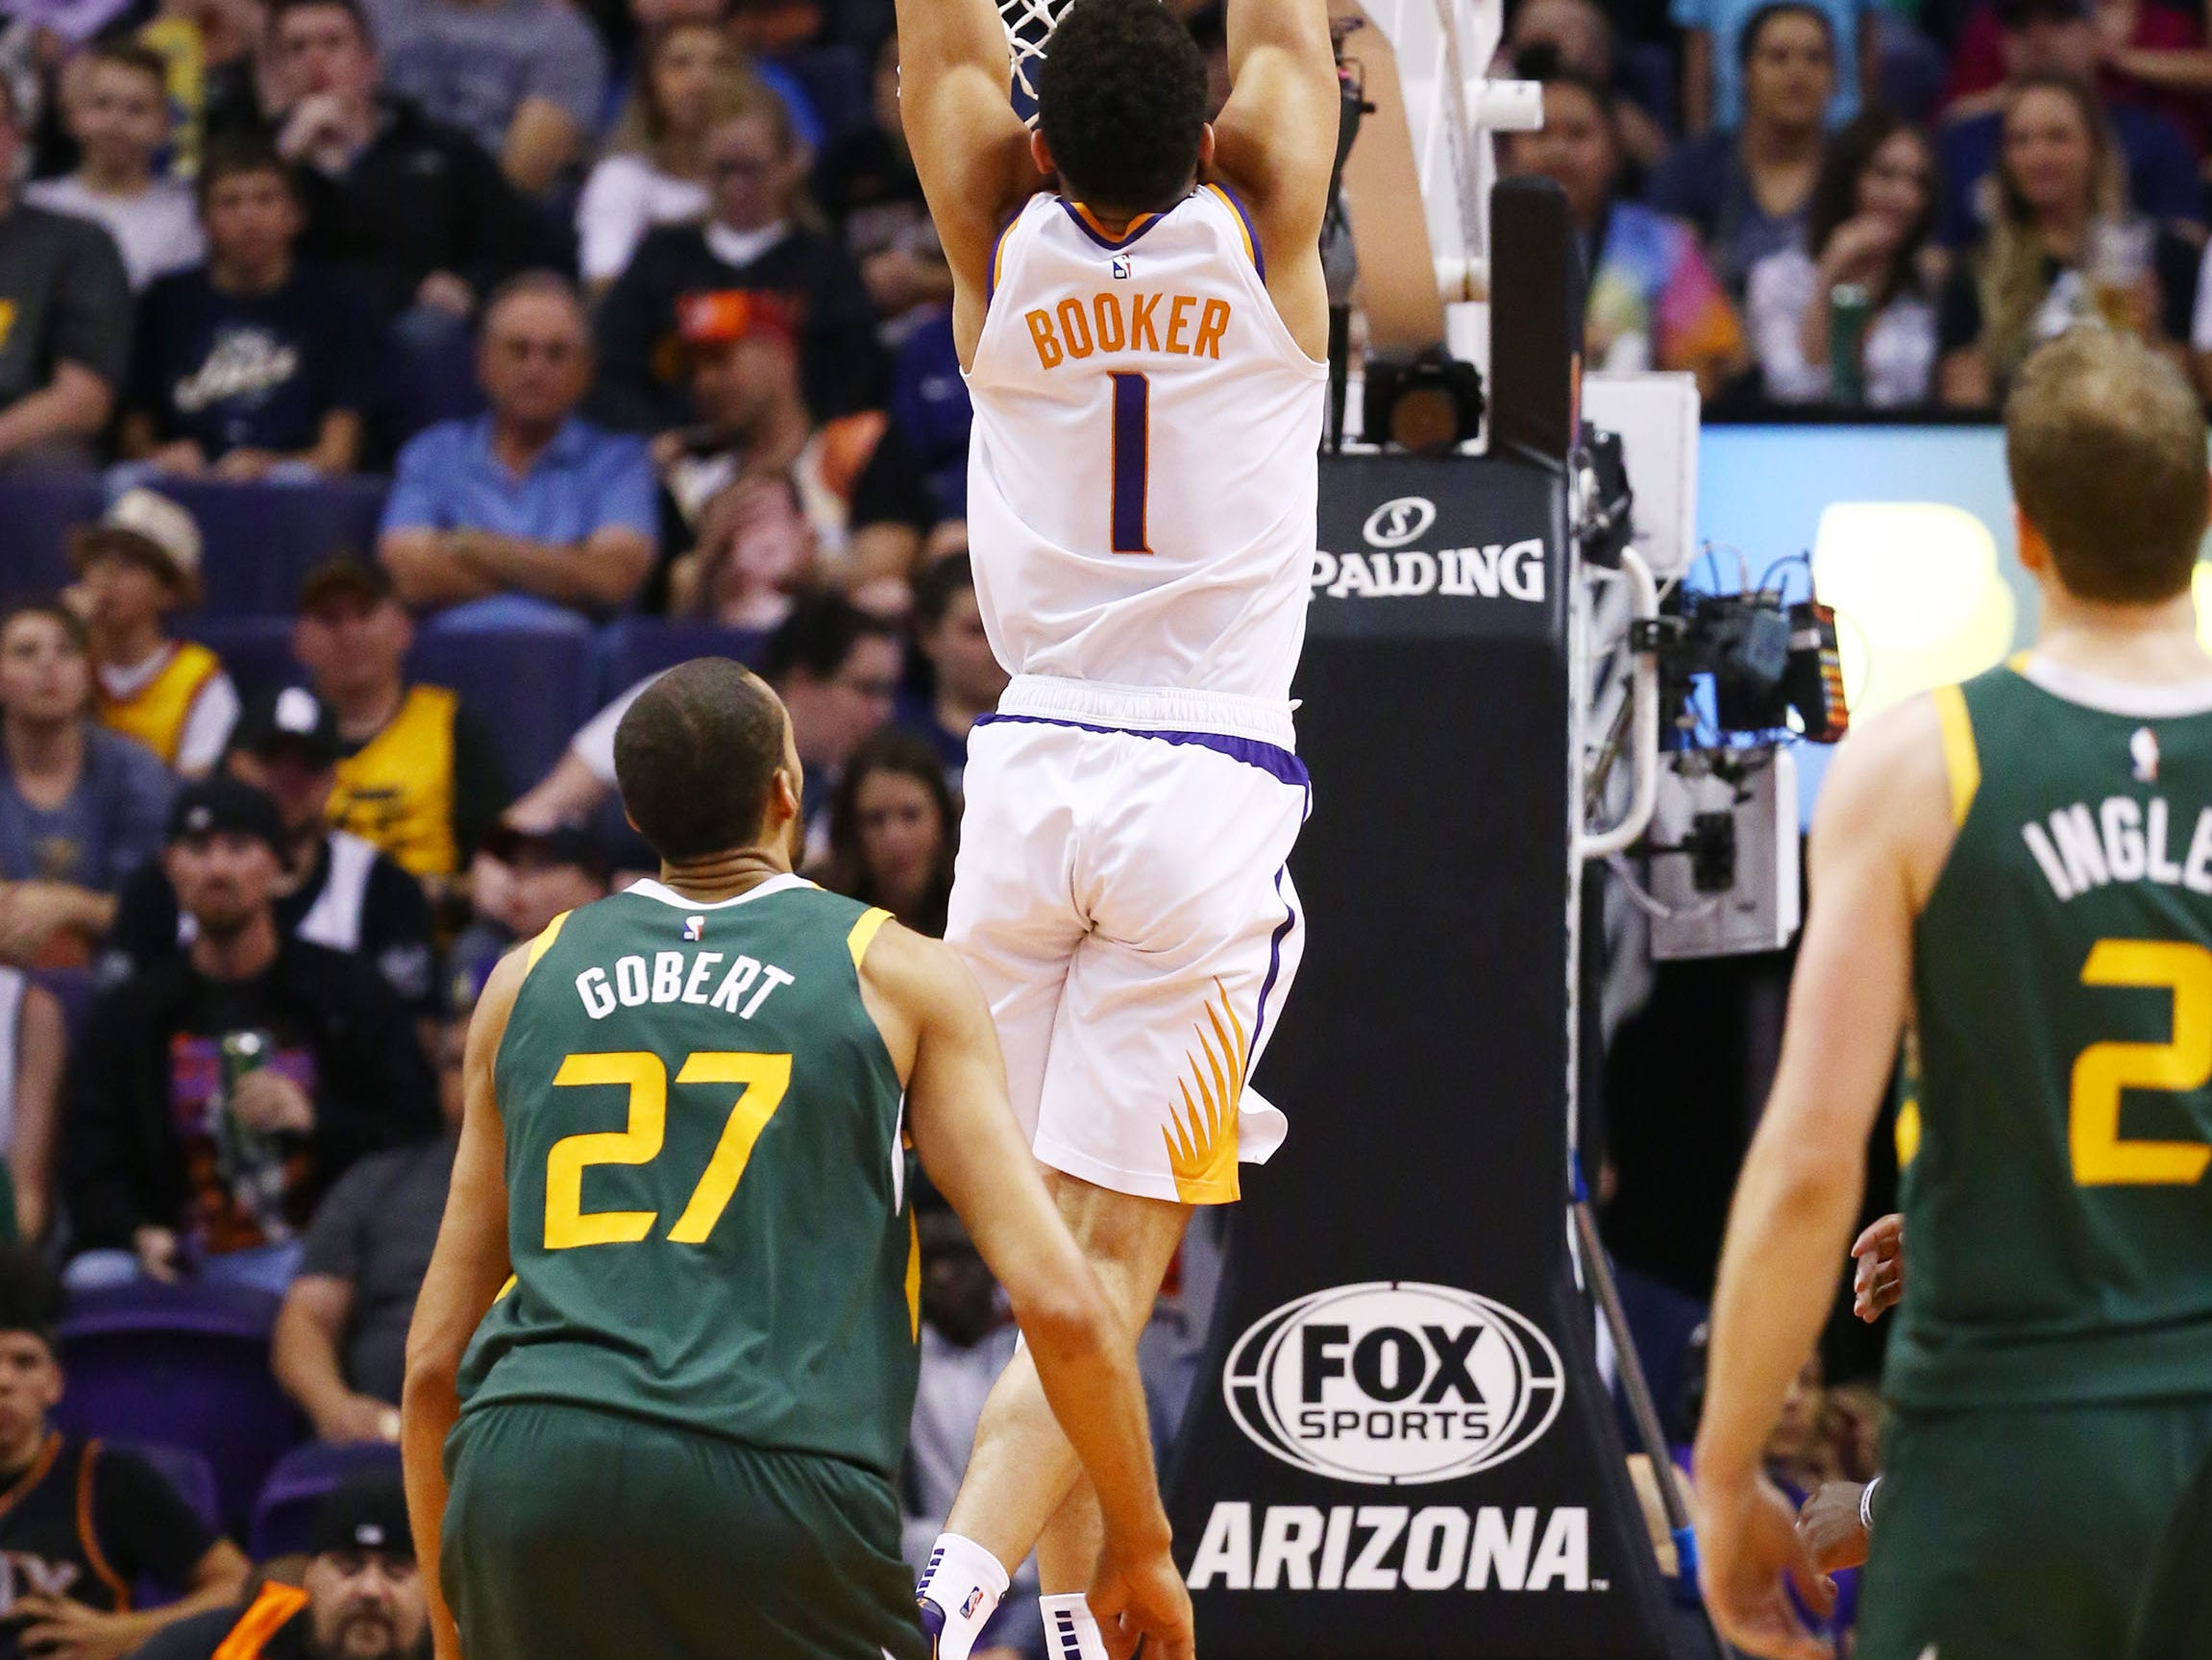 Phoenix Suns guard Devin Booker (1) slam dunks the ball past Utah Jazz center Rudy Gobert (27) in the first half on Apr. 3, 2019 at Talking Stick Resort Arena in Phoenix, Ariz.